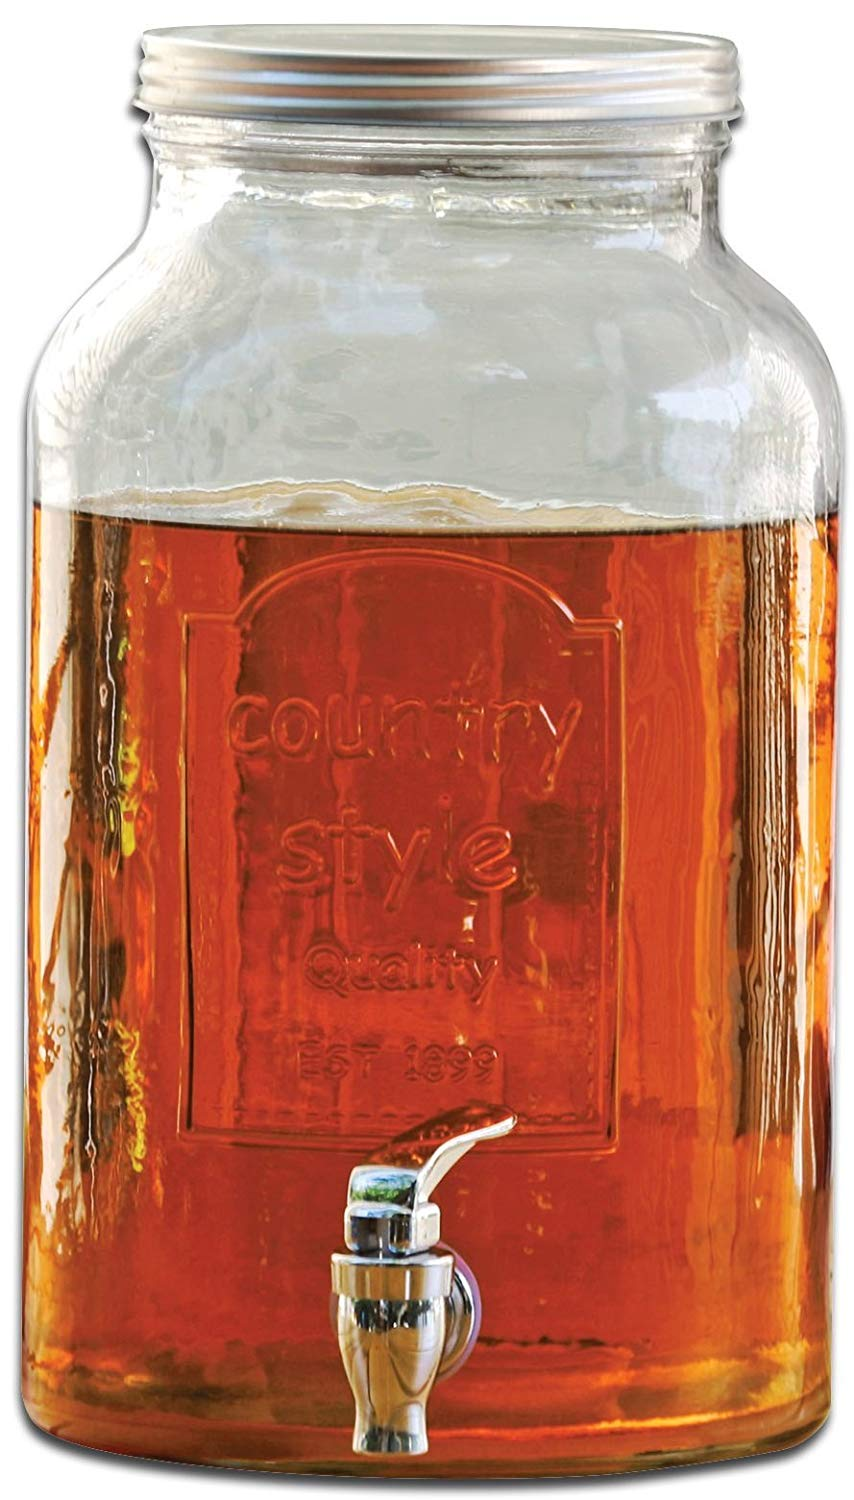 Circleware Country Mason Jar Glass Beverage Drink Dispenser with Metal Lid, 1.5 Gallon